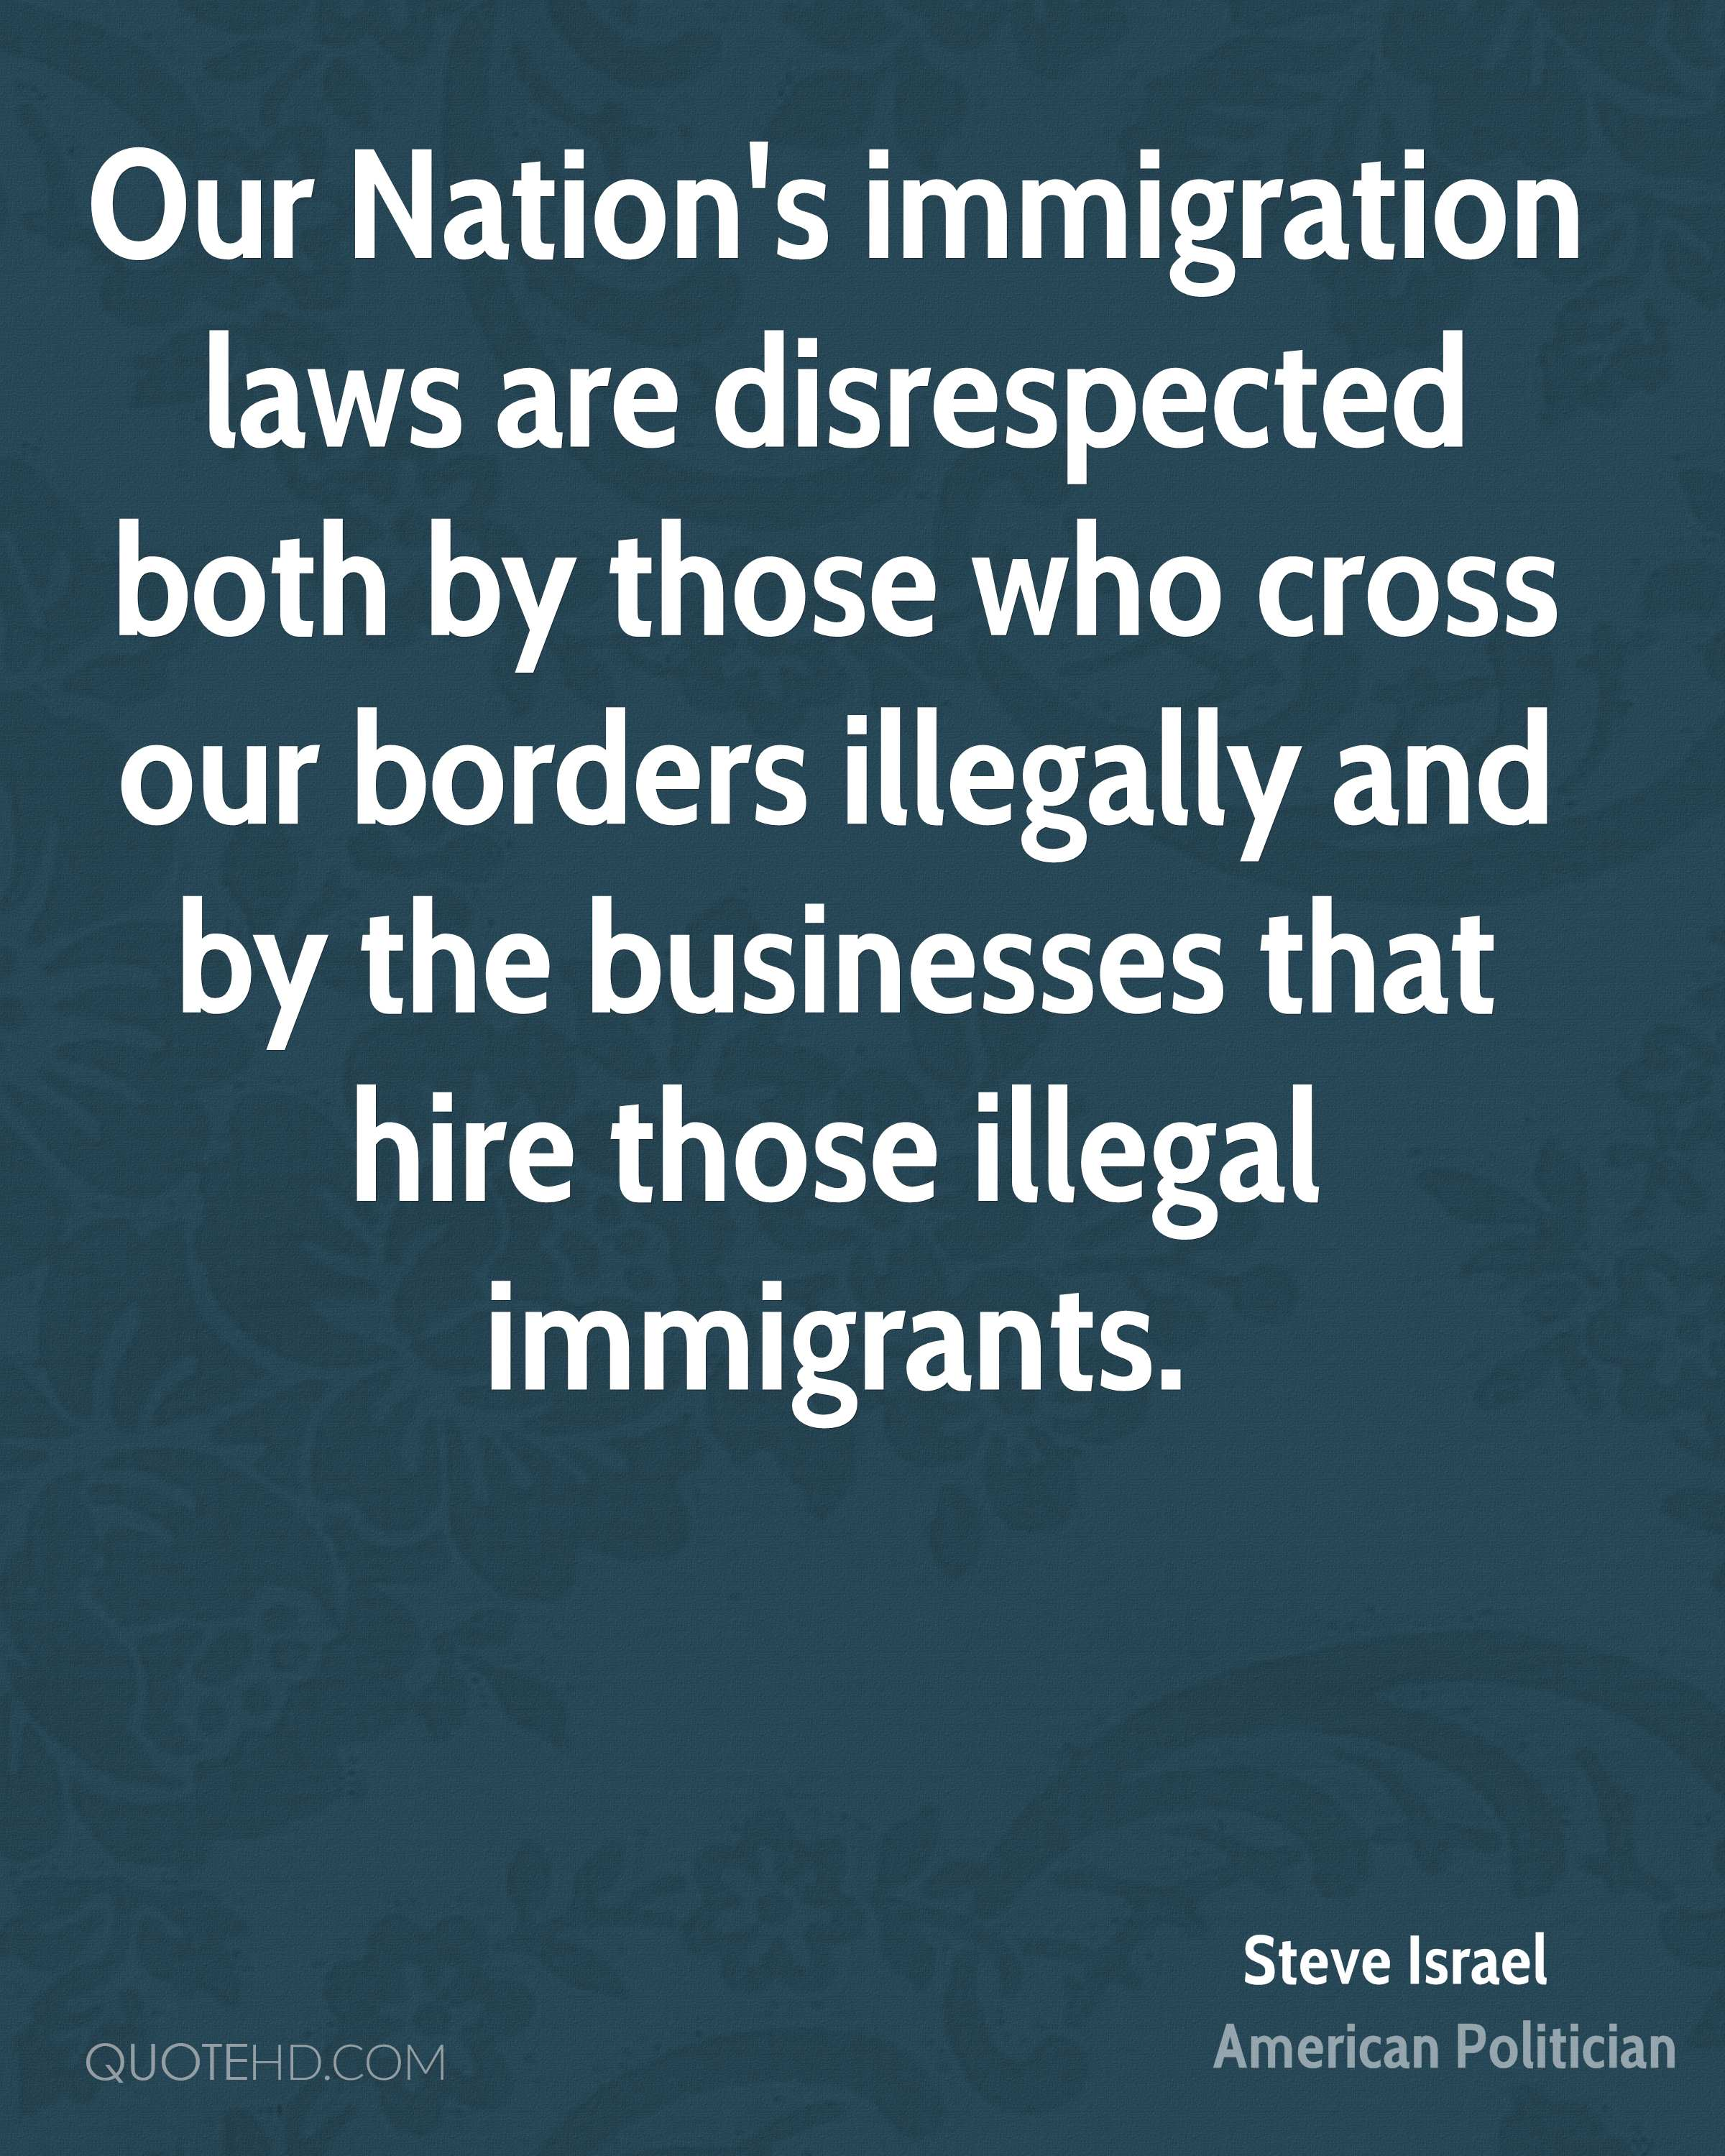 Our Nation's immigration laws are disrespected both by those who cross our borders illegally and by the businesses that hire those illegal immigrants.